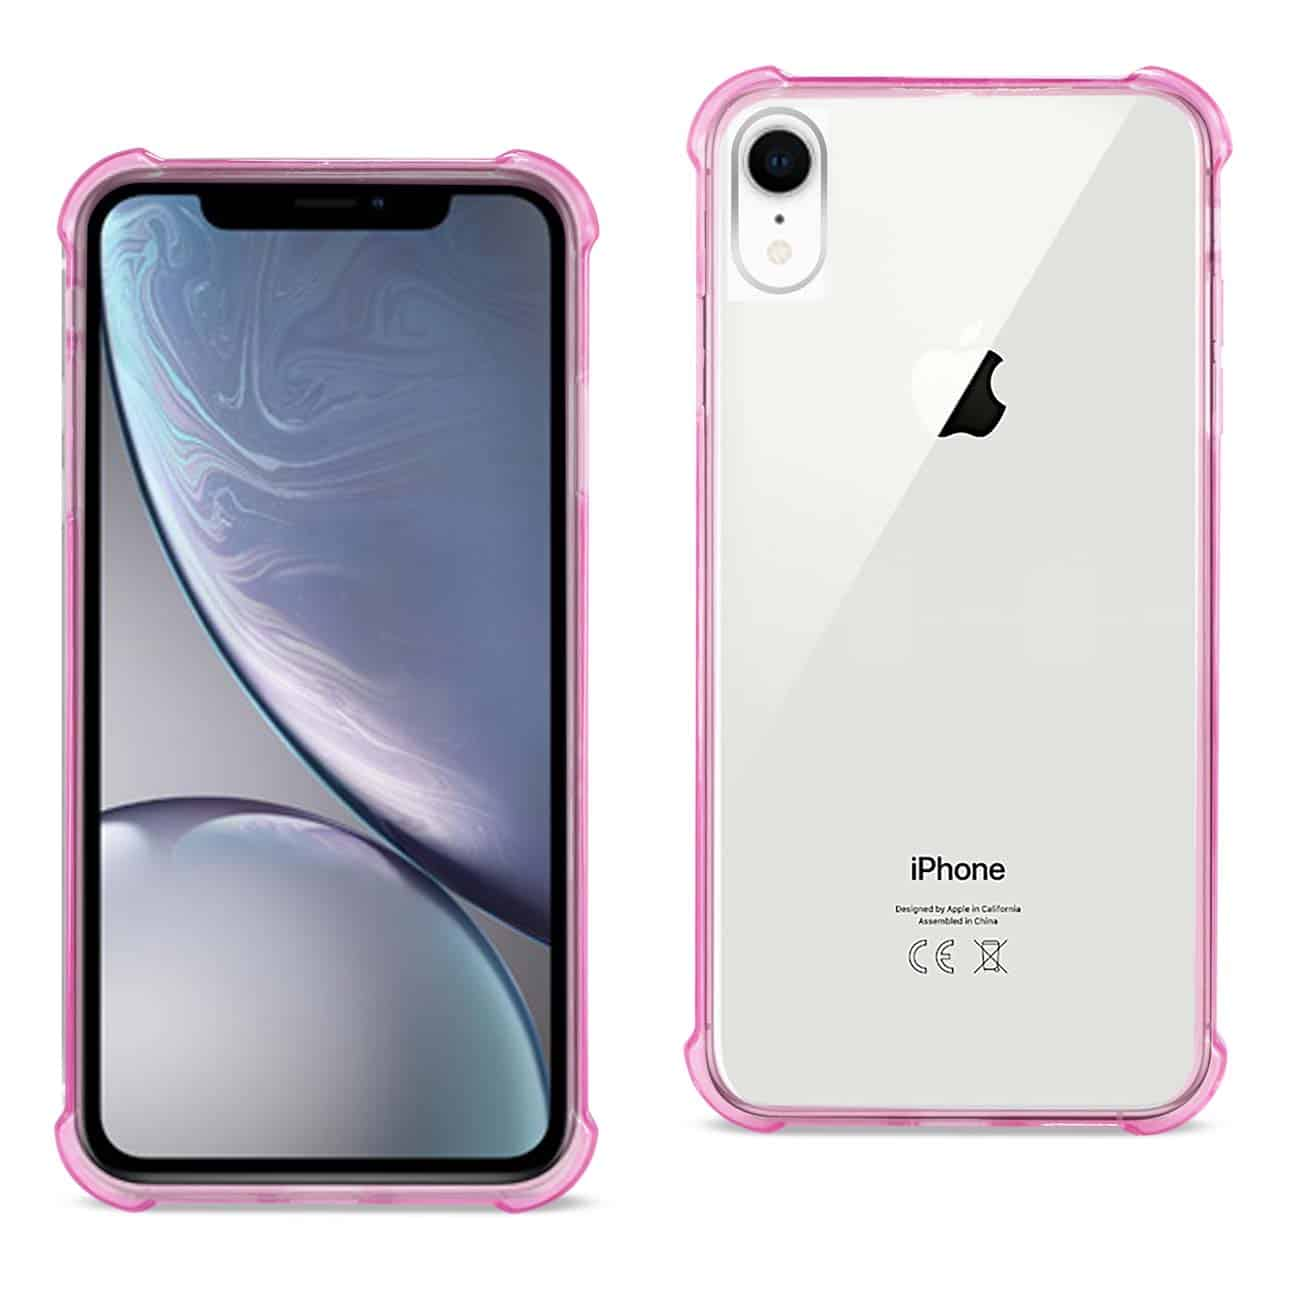 iPhone XR Clear Bumper Case With Air Cushion Protection In Clear Hot Pink